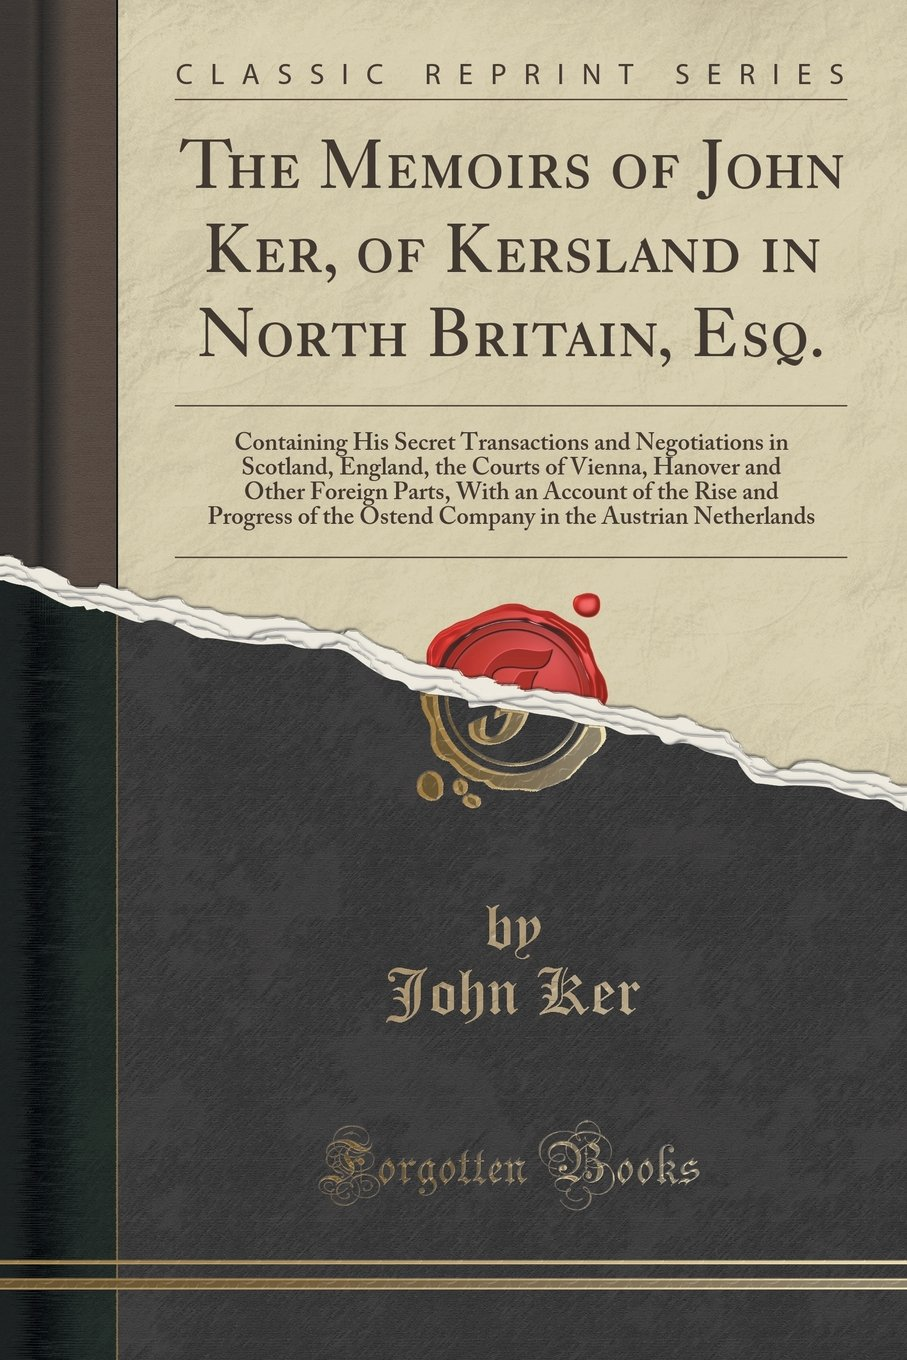 The Memoirs of John Ker, of Kersland in North Britain, Esq.: Containing His Secret Transactions and Negotiations in Scotland, England, the Courts of ... Rise and Progress of the Ostend Company in pdf